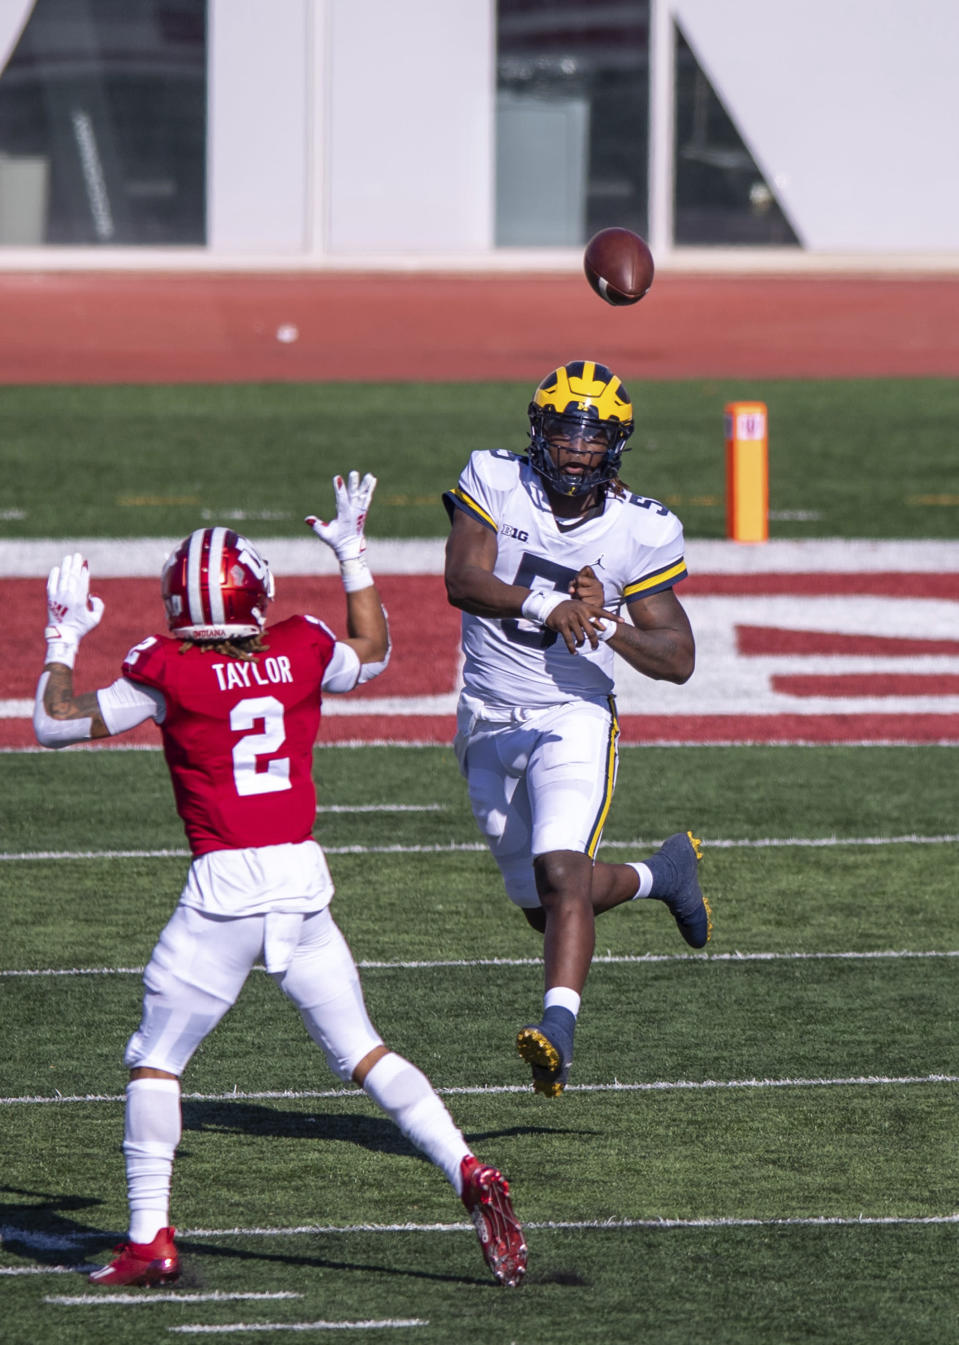 Michigan quarterback Joe Milton (5) throws a pass during the first half of an NCAA college football game against Indiana, Saturday, Nov. 7, 2020, in Bloomington, Ind. (AP Photo/Doug McSchooler)